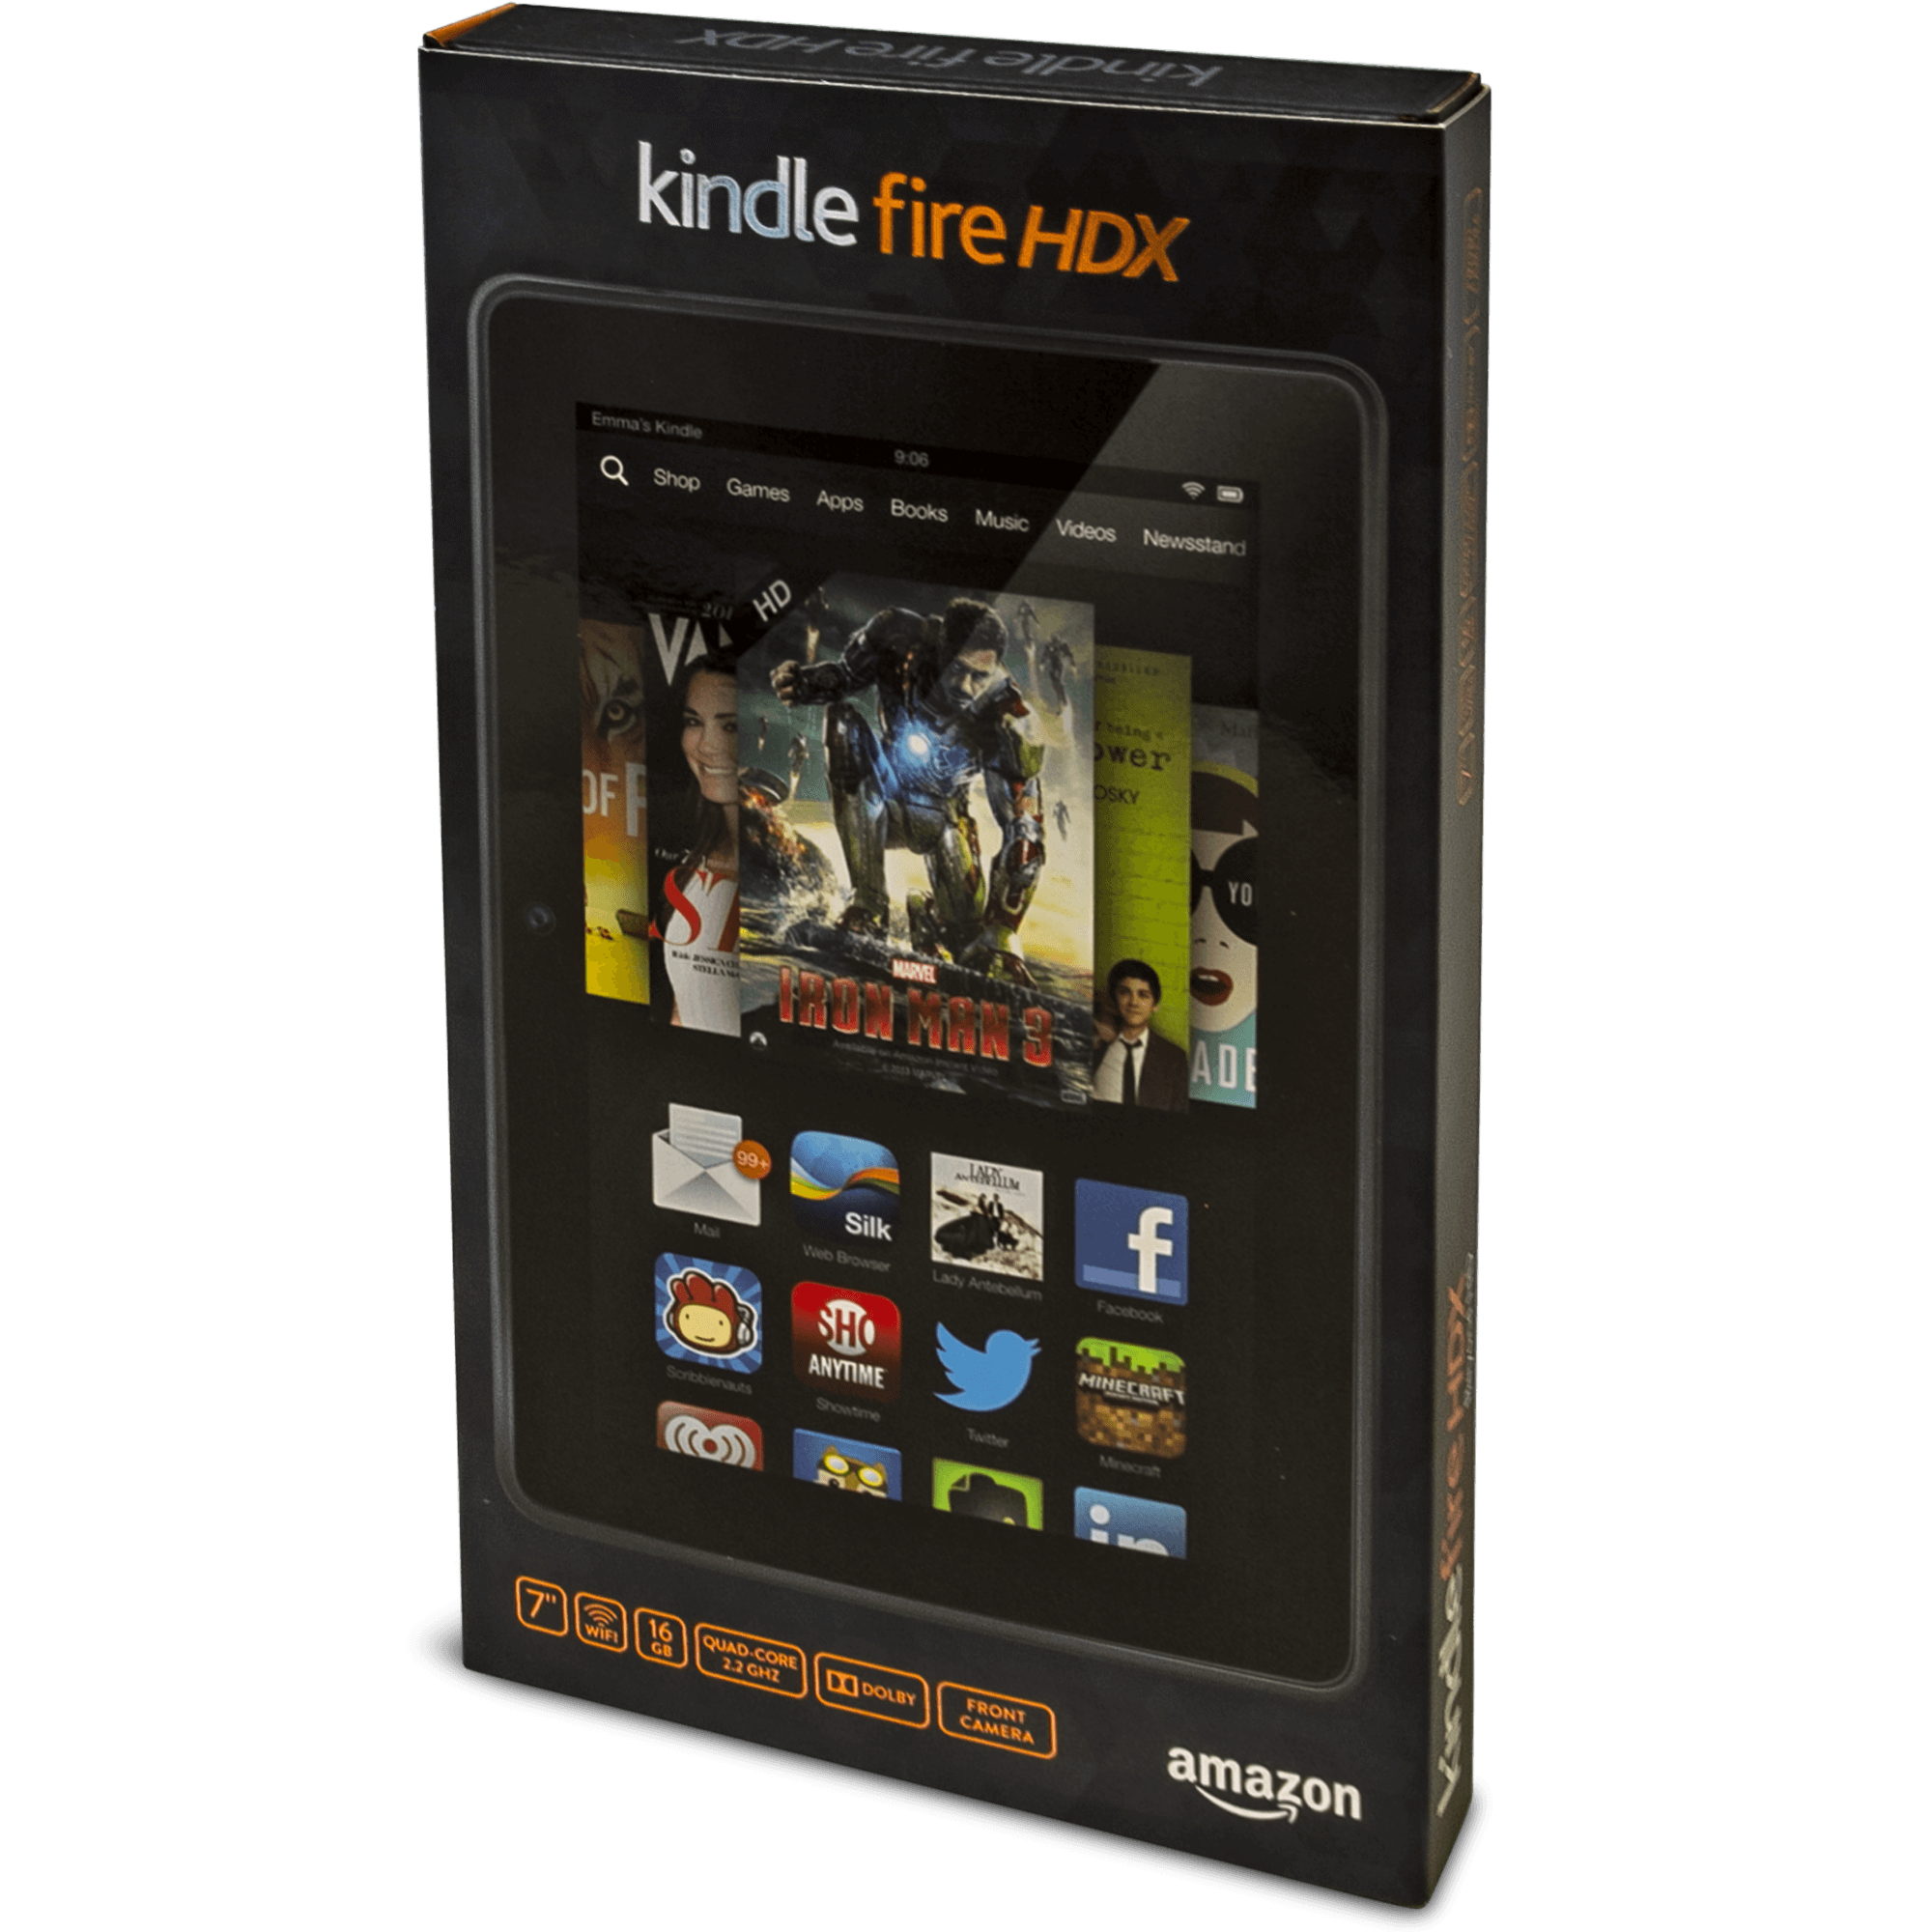 Kindle fire hdx 7 battery life / Mma world series